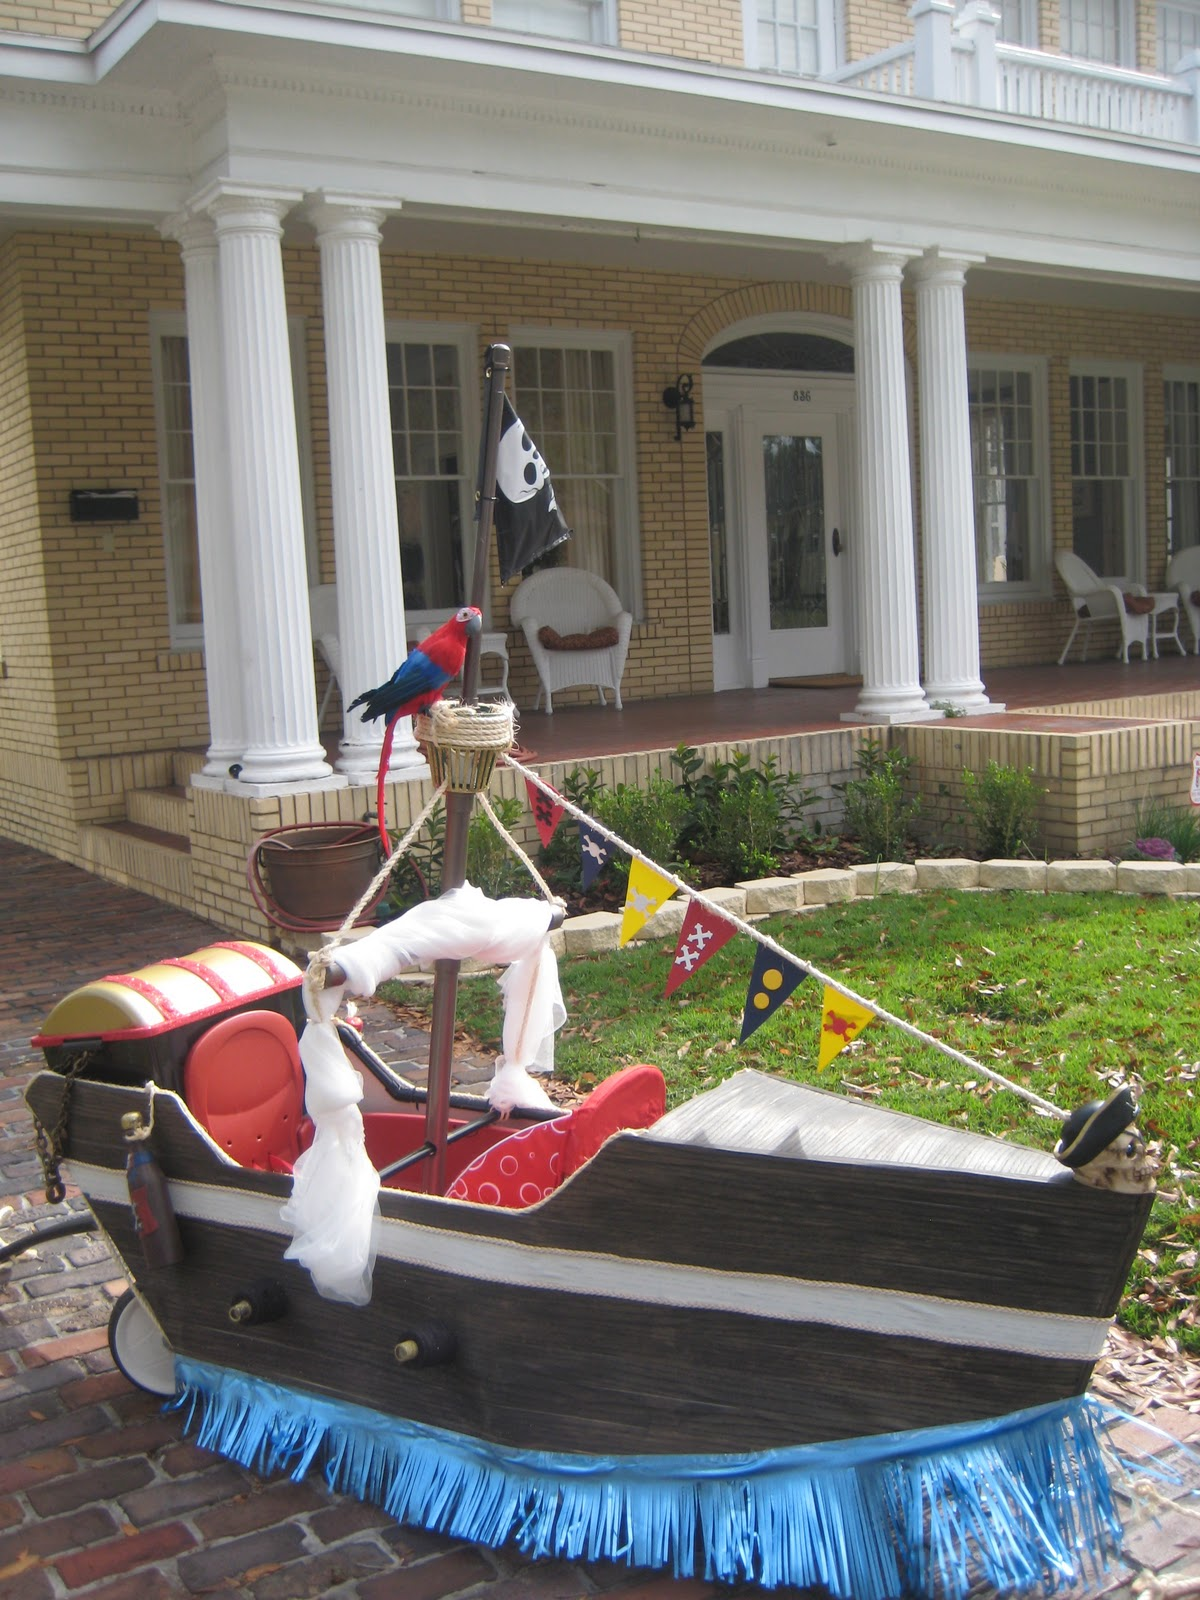 A pirates ship with wheels for Fantasy Fest Parade | Getting To ...